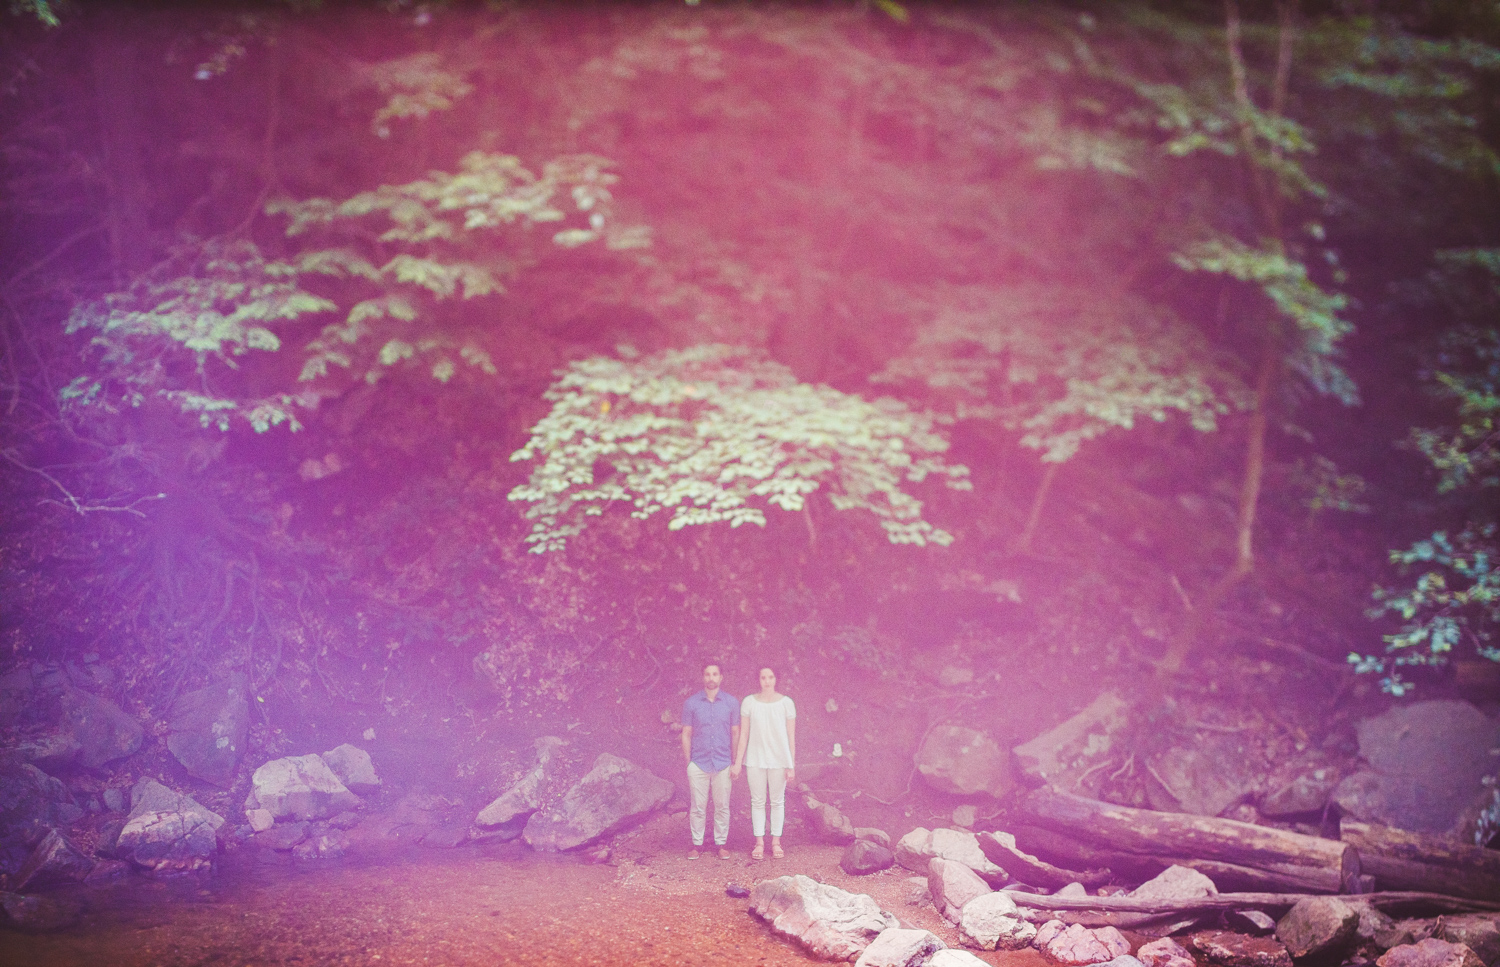 006 - creative engagement photo of couple with pink and green hues.jpg